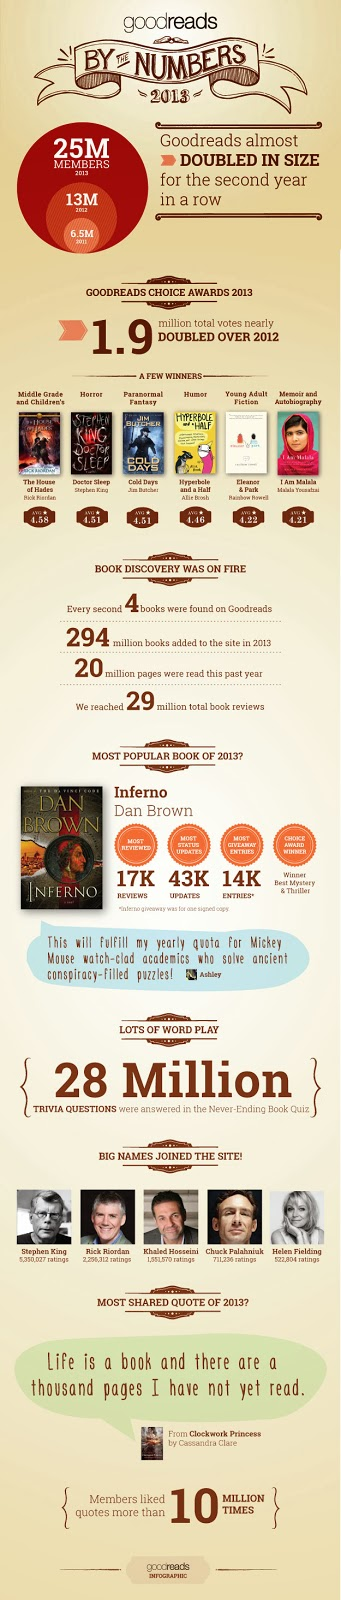 https://www.goodreads.com/blog/show/449-goodreads-2013-by-the-numbers-an-infographic